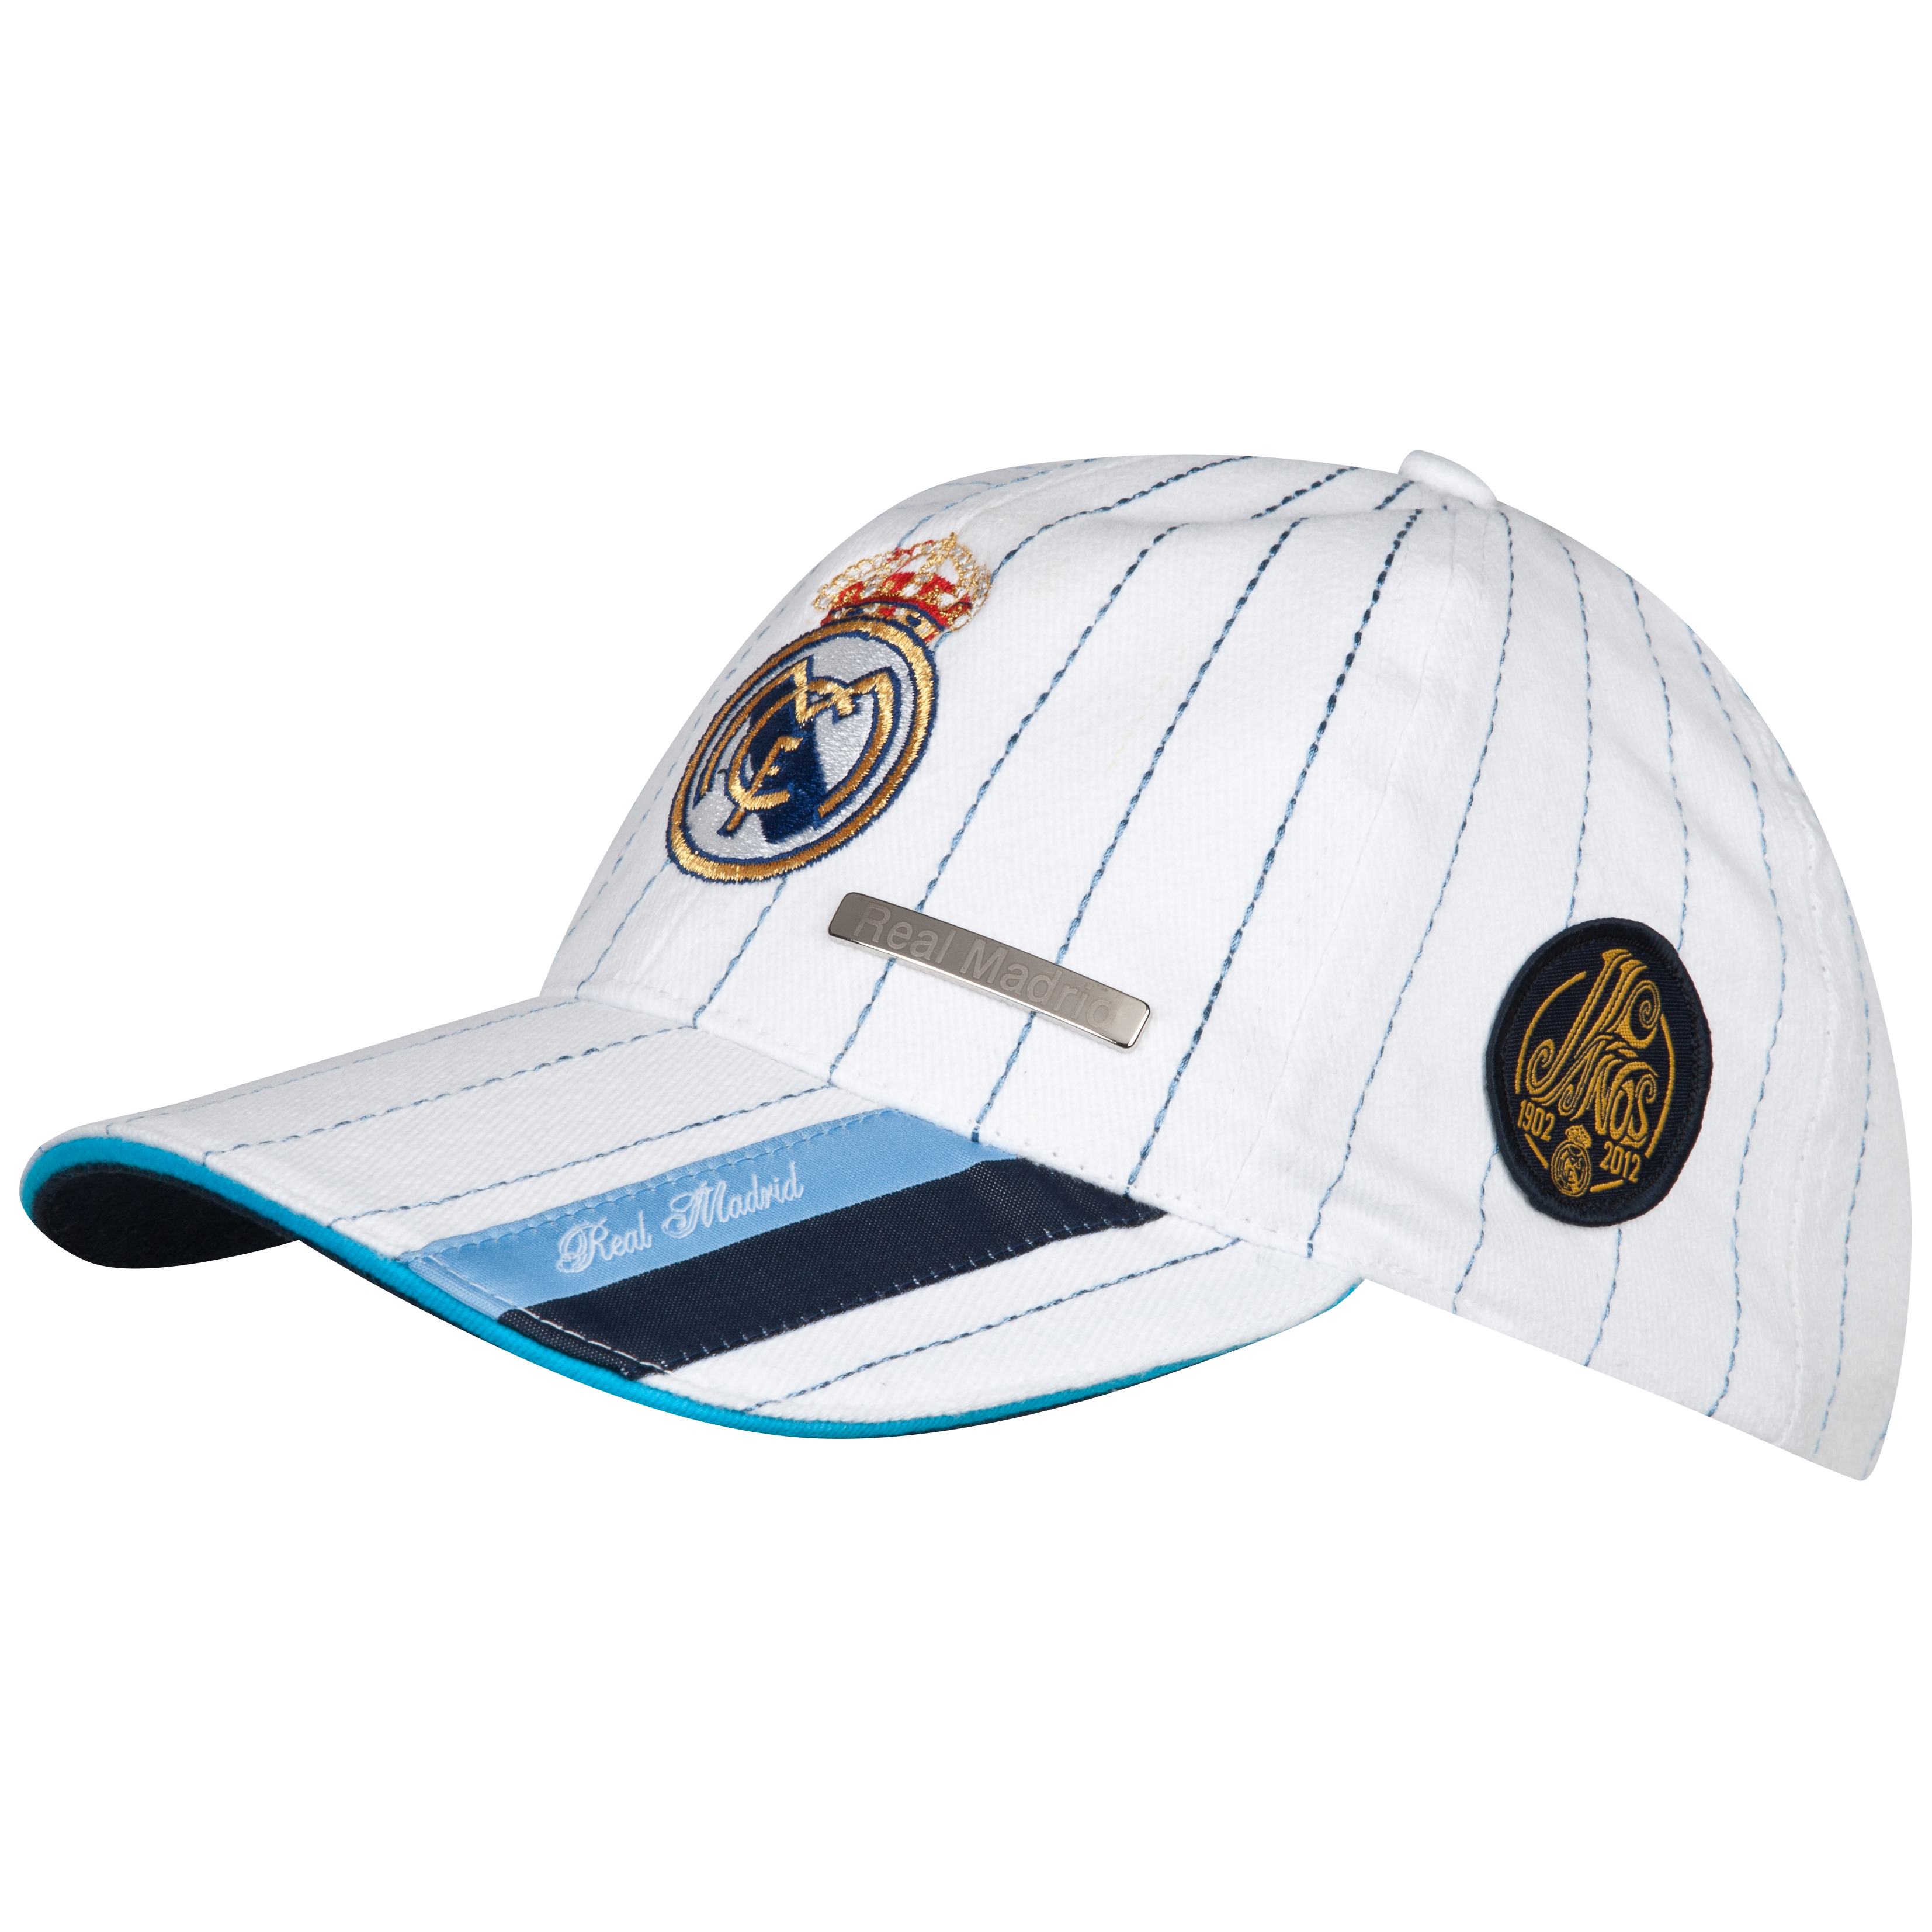 Real Madrid Gorra con Escudo - Adultos Blanca